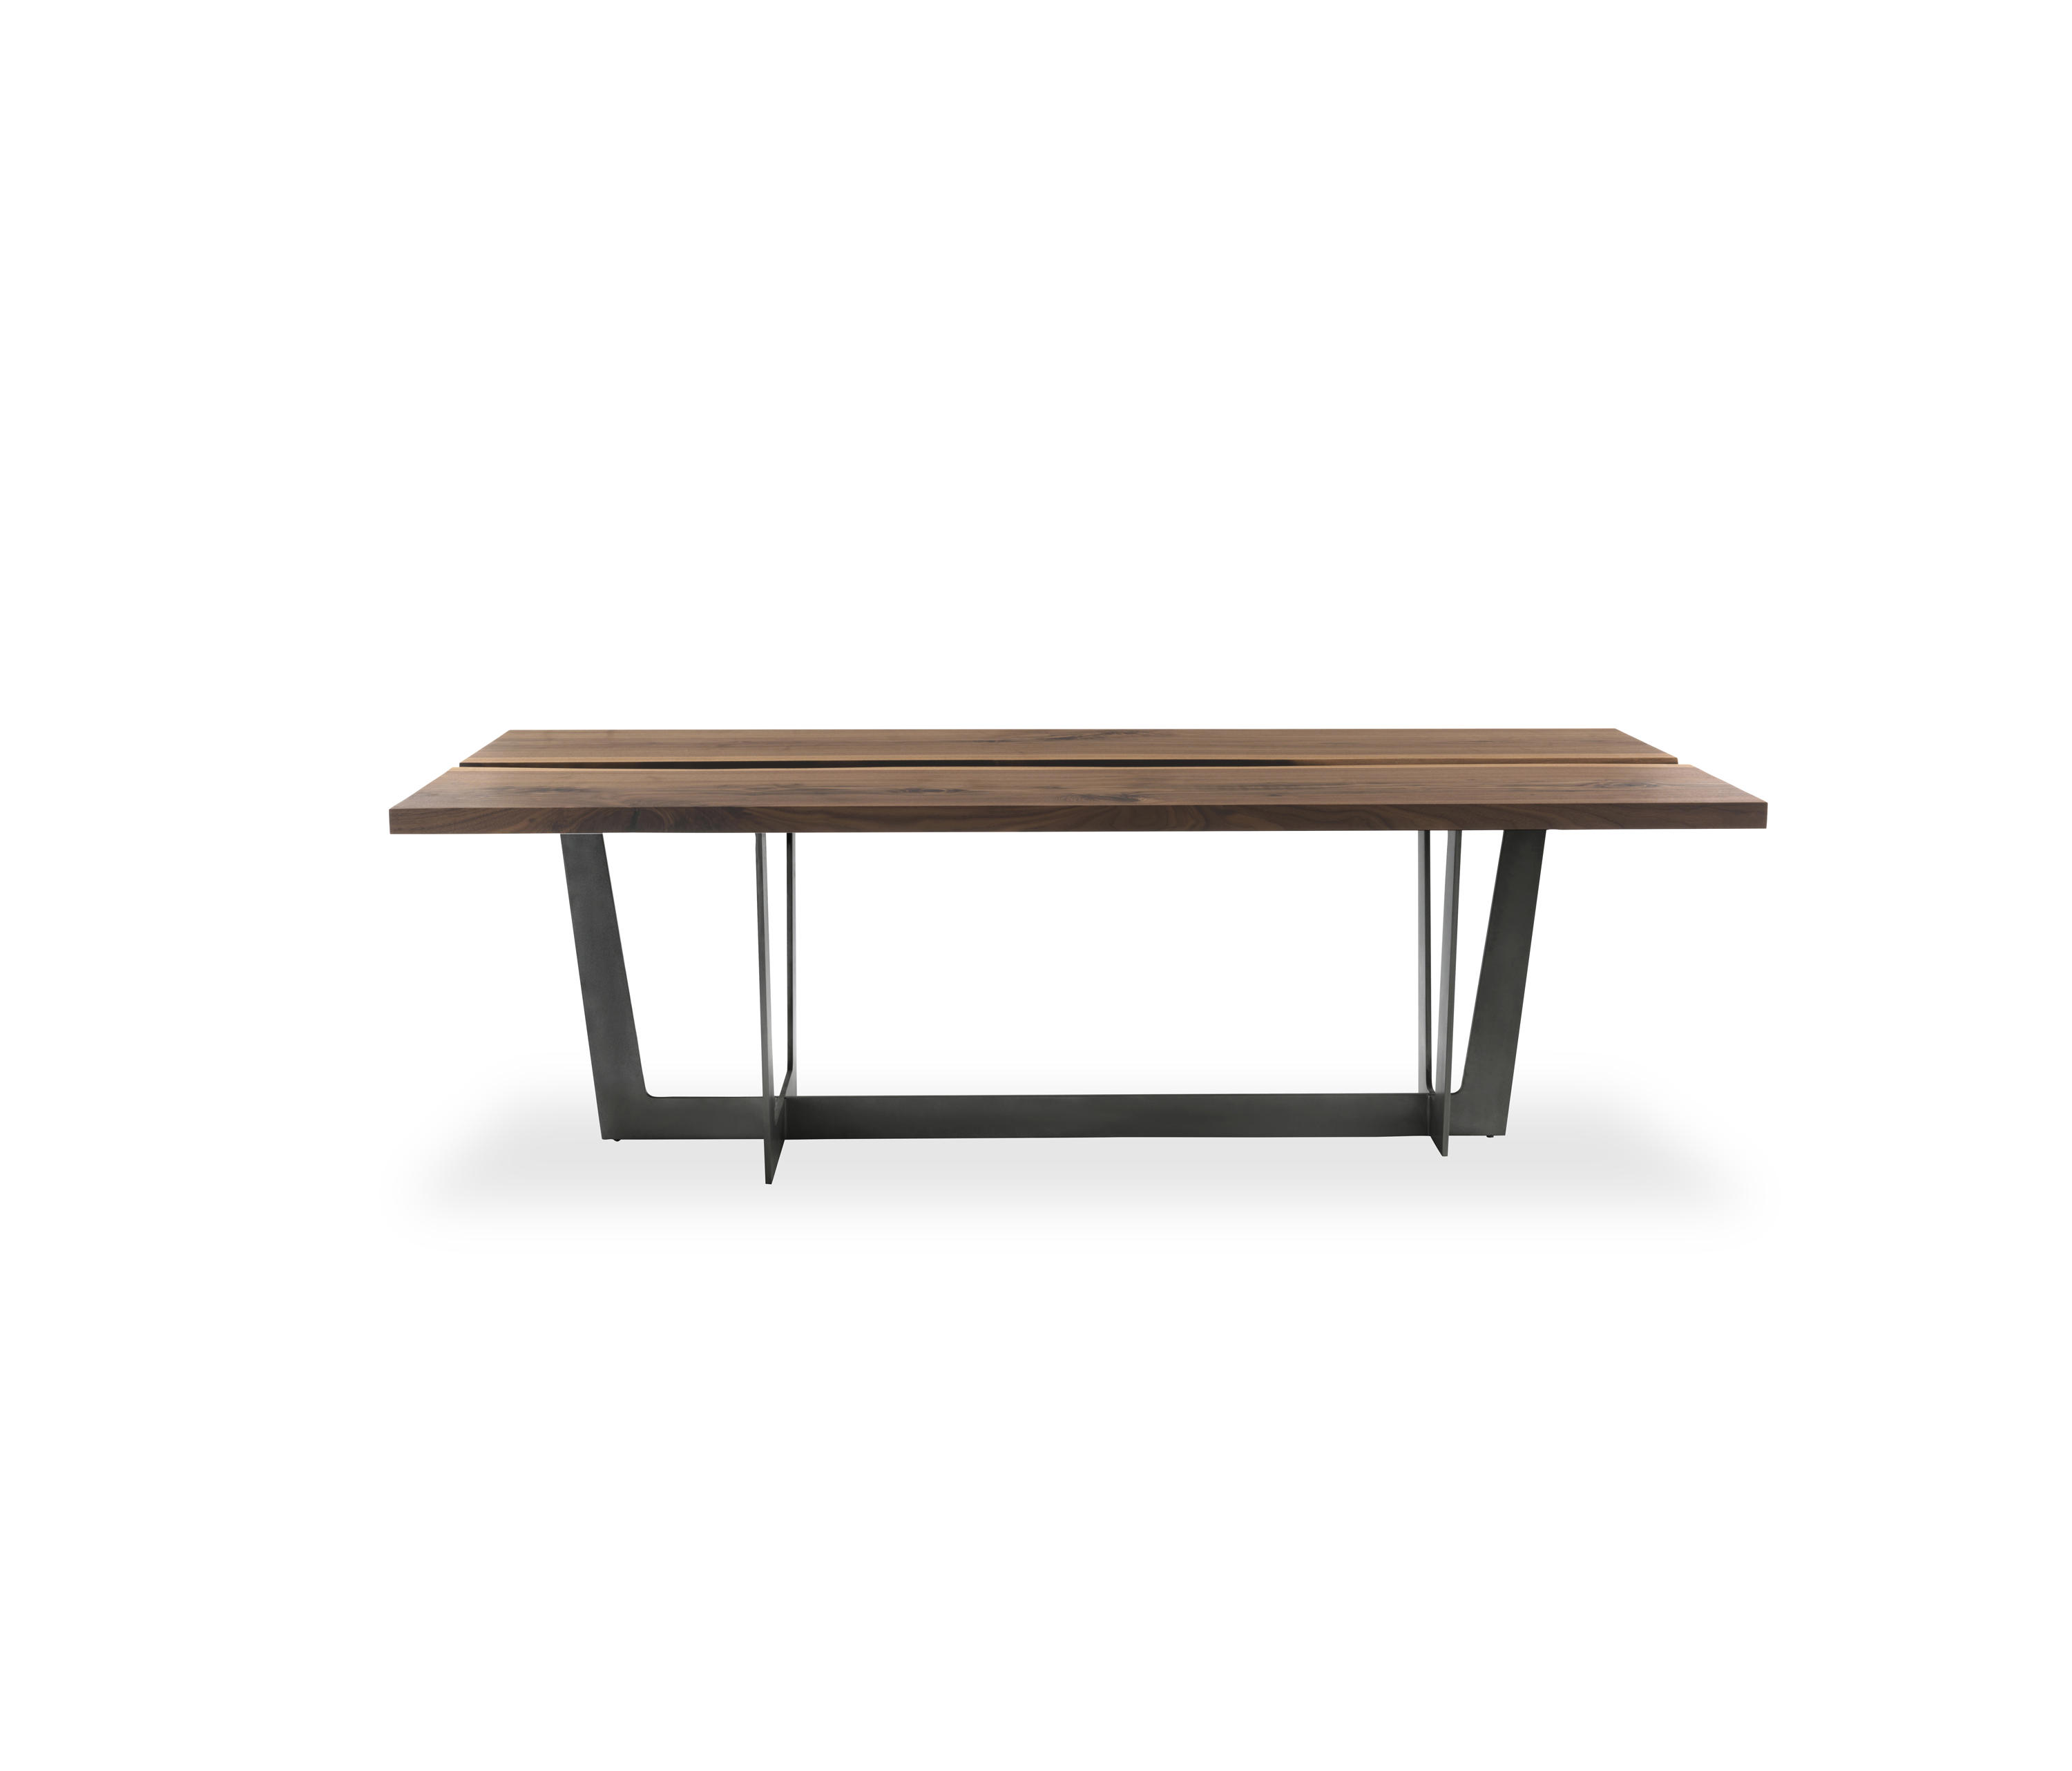 RIALTO TABLE - Dining tables from Riva 1920 | Architonic